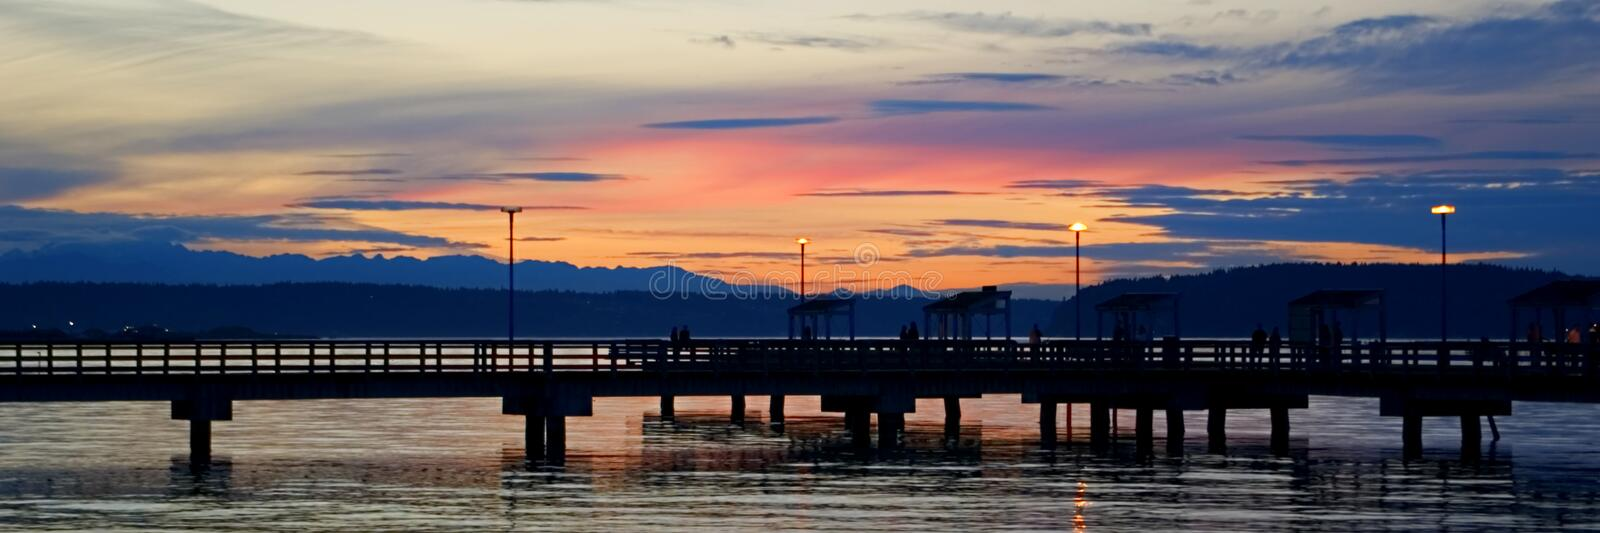 Sunset. Overlooking a fishing pier royalty free stock images